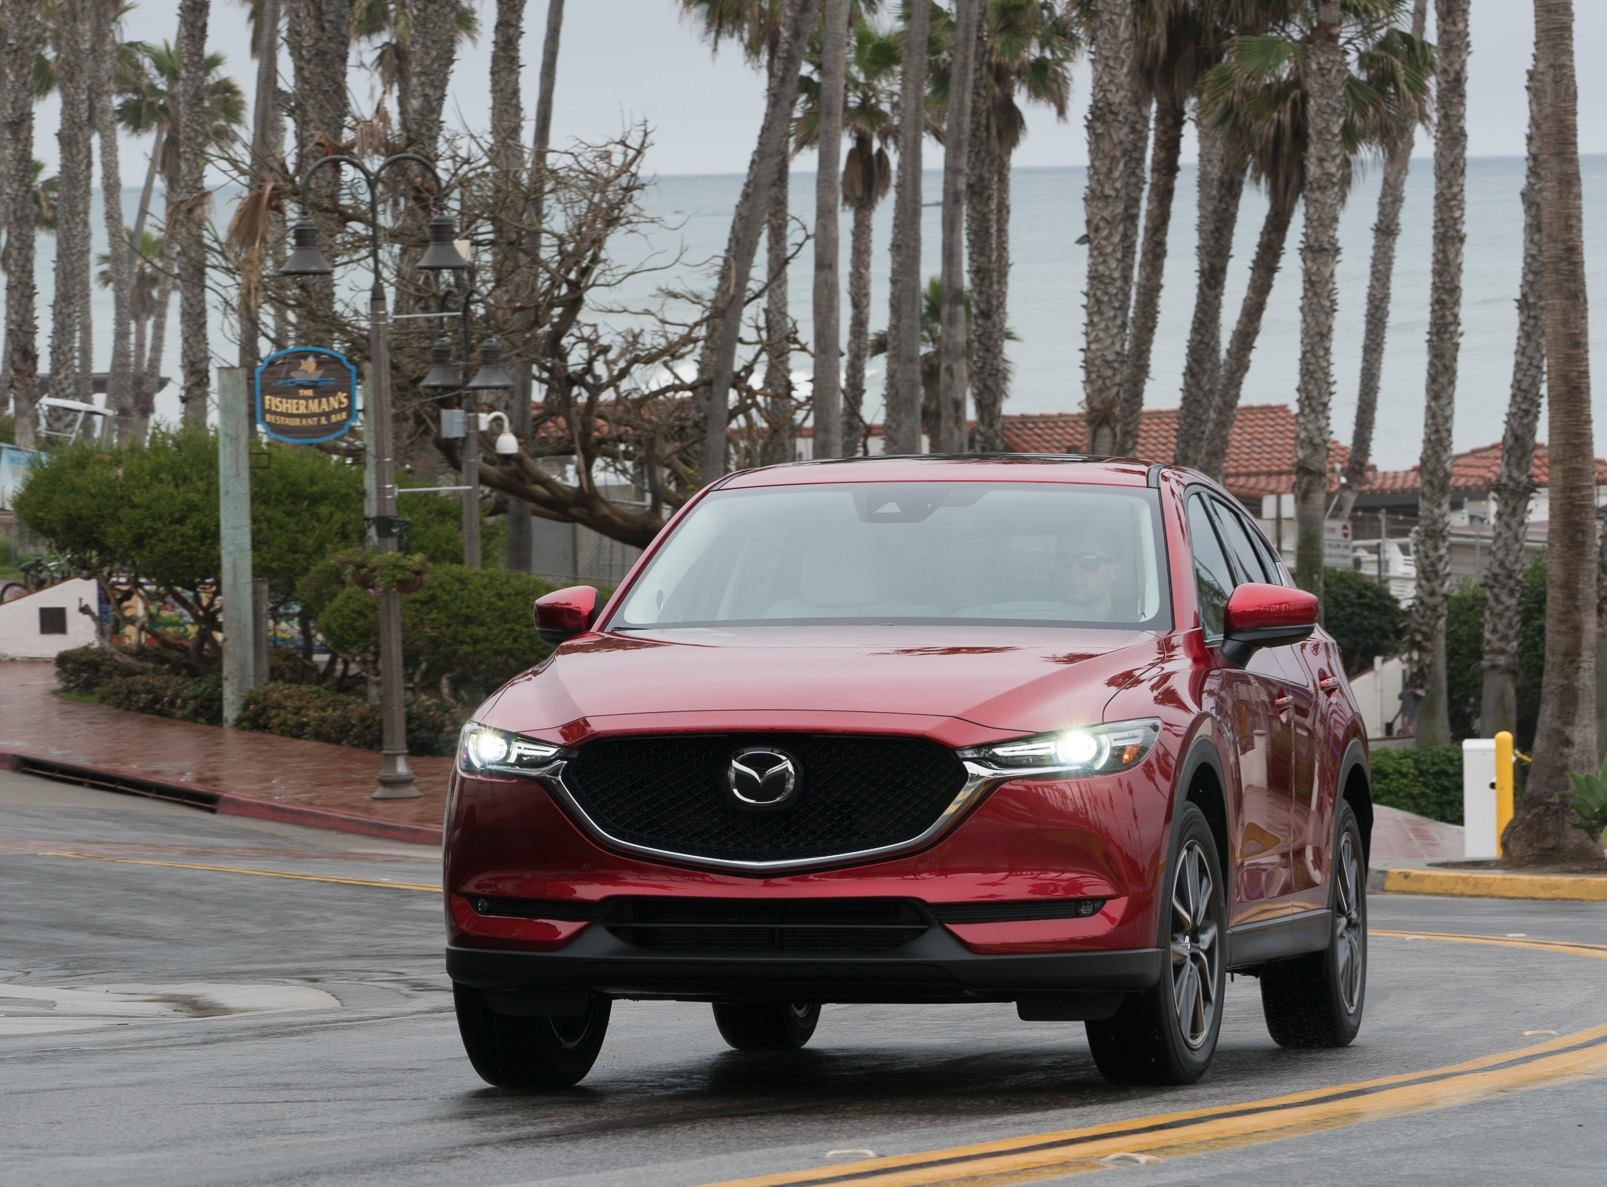 2017 Mazda CX-5 First Drive Review – Less is More - The